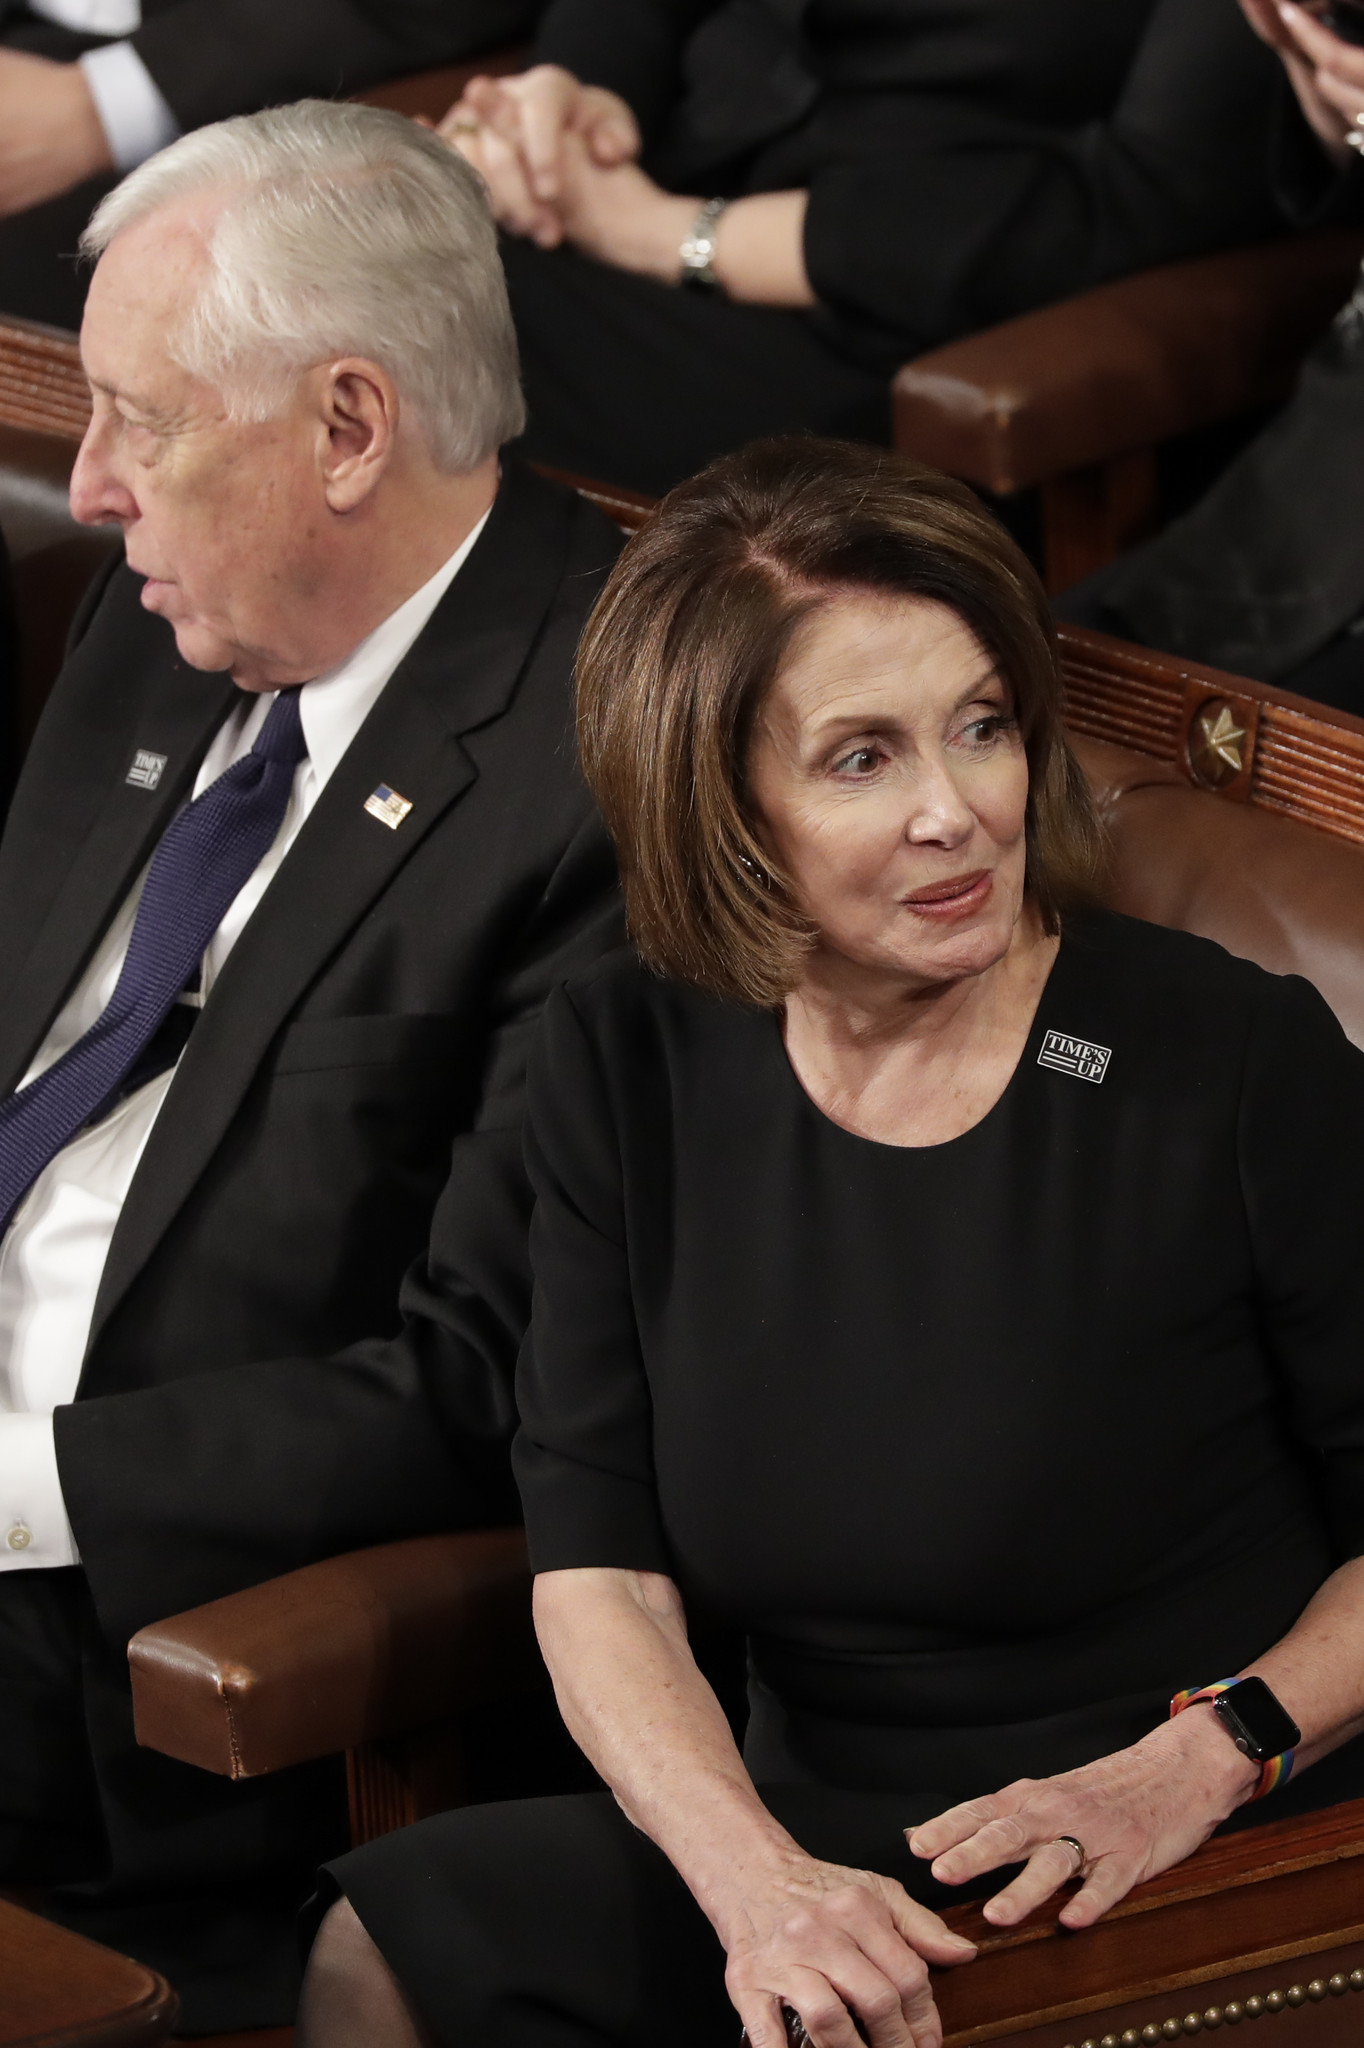 House Minority Leader Nancy Pelosi of California and Minority Whip Steny Hoyer, D-Md., attend the St